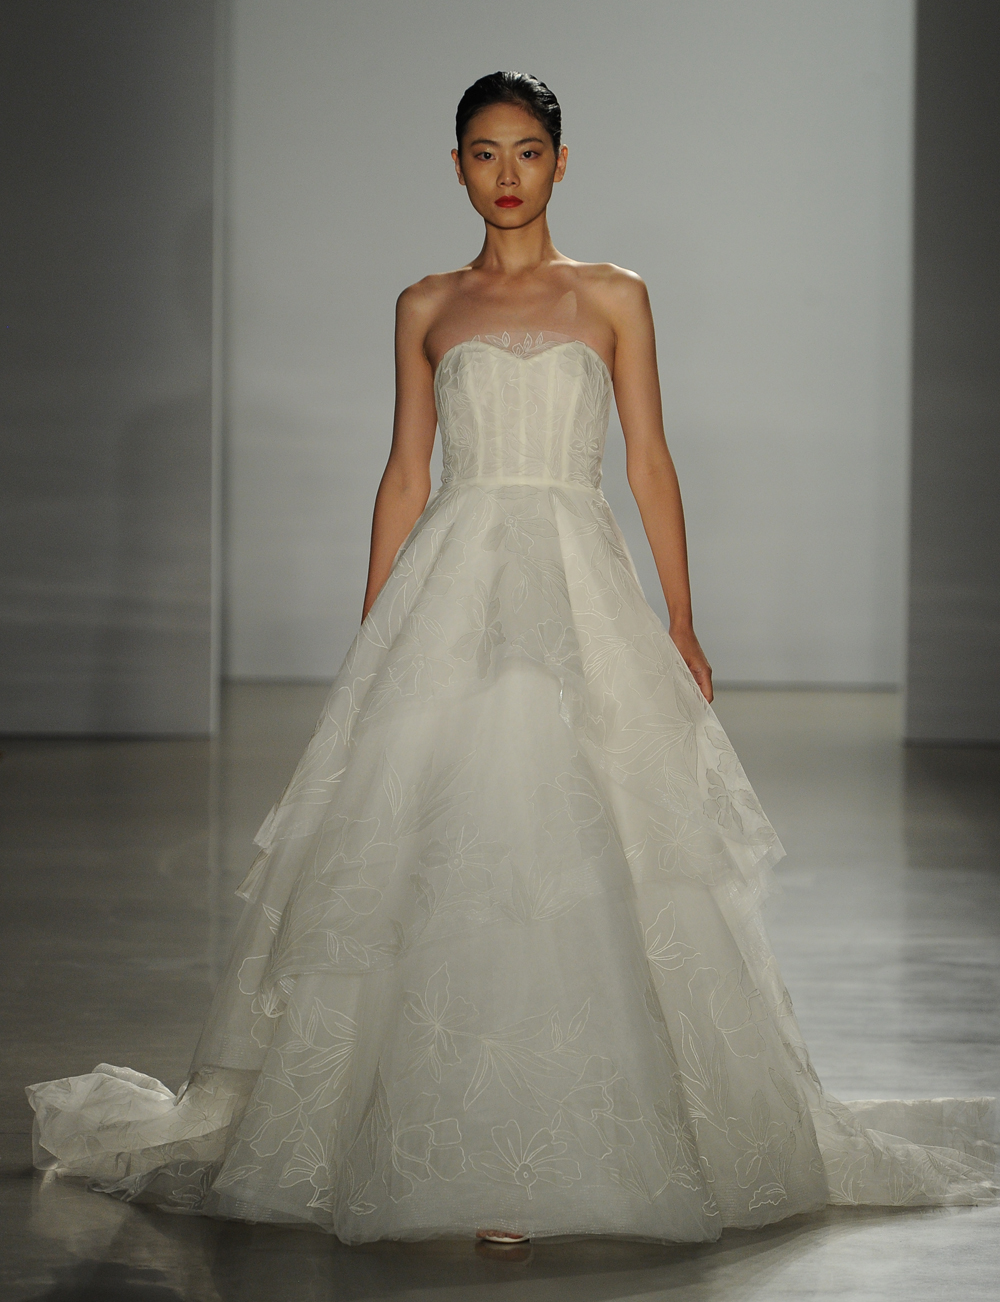 New Amsale Wedding Dresses Are Modern And Romantic - Weddbook